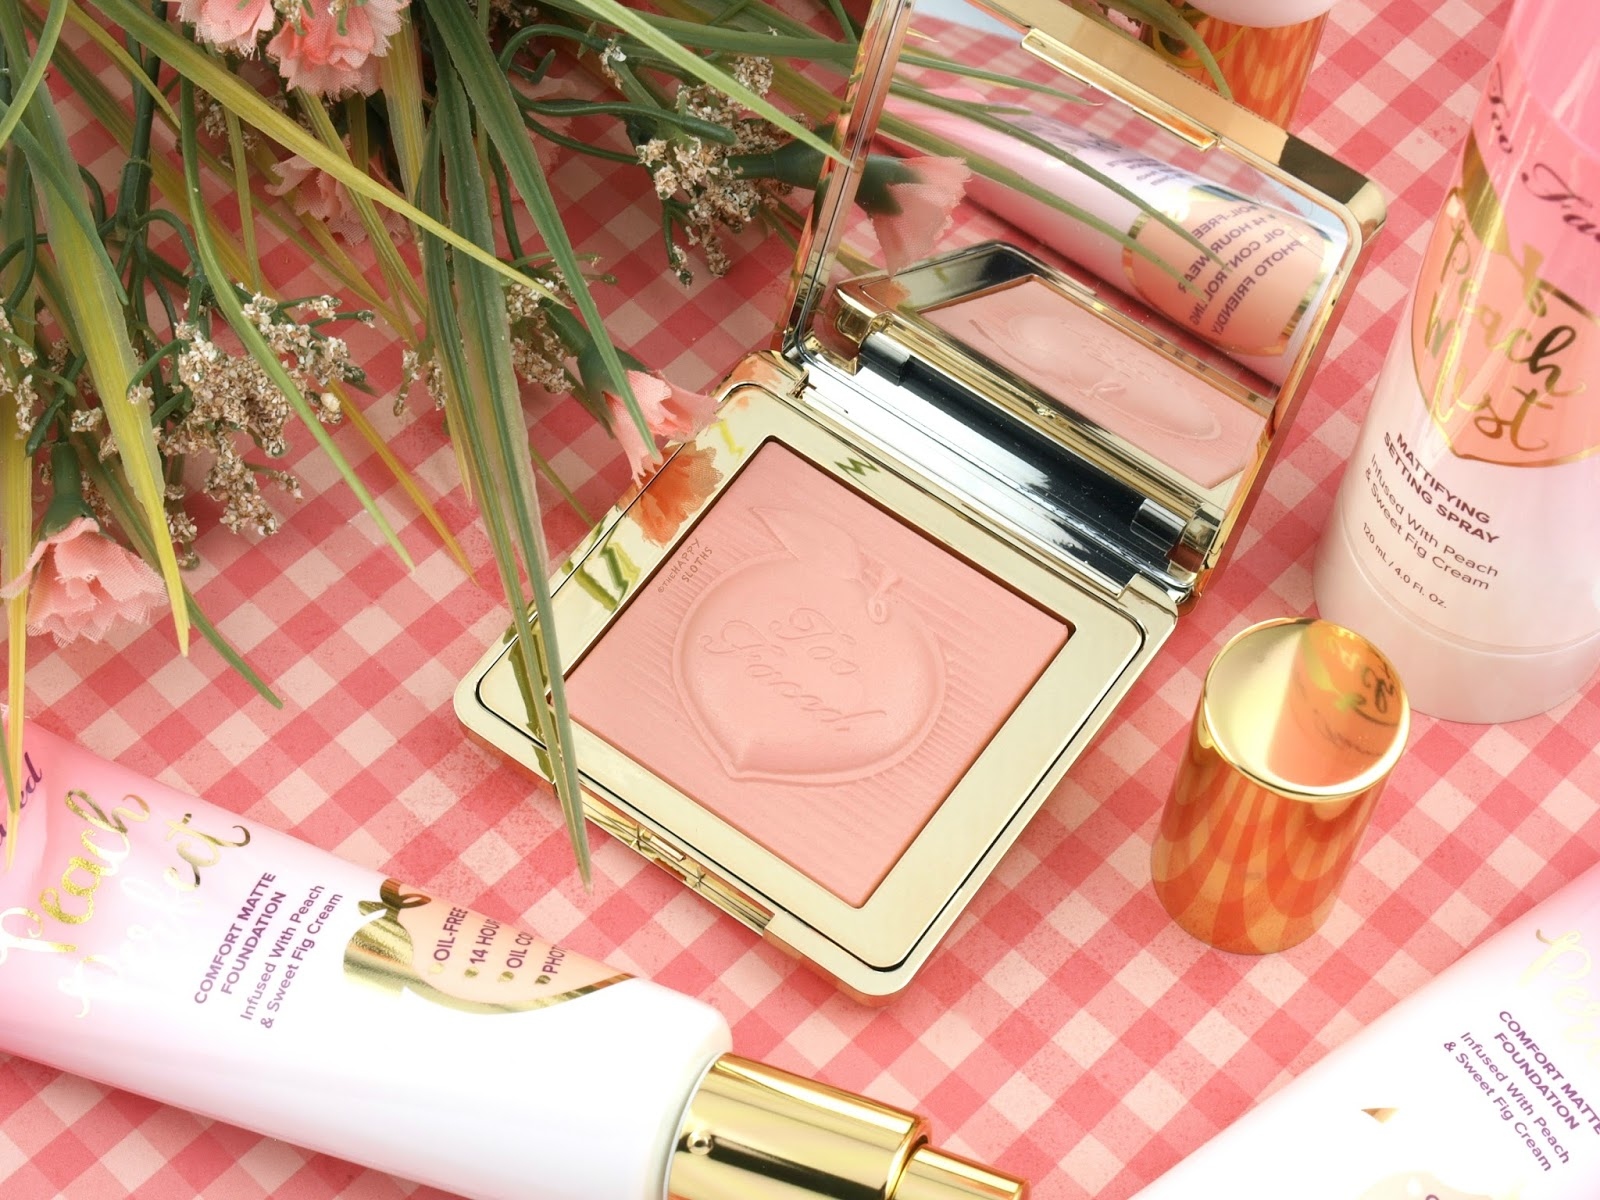 Too Faced Peaches & Cream Collection | Peach Blur Translucent Smoothing Finishing Powder: Review